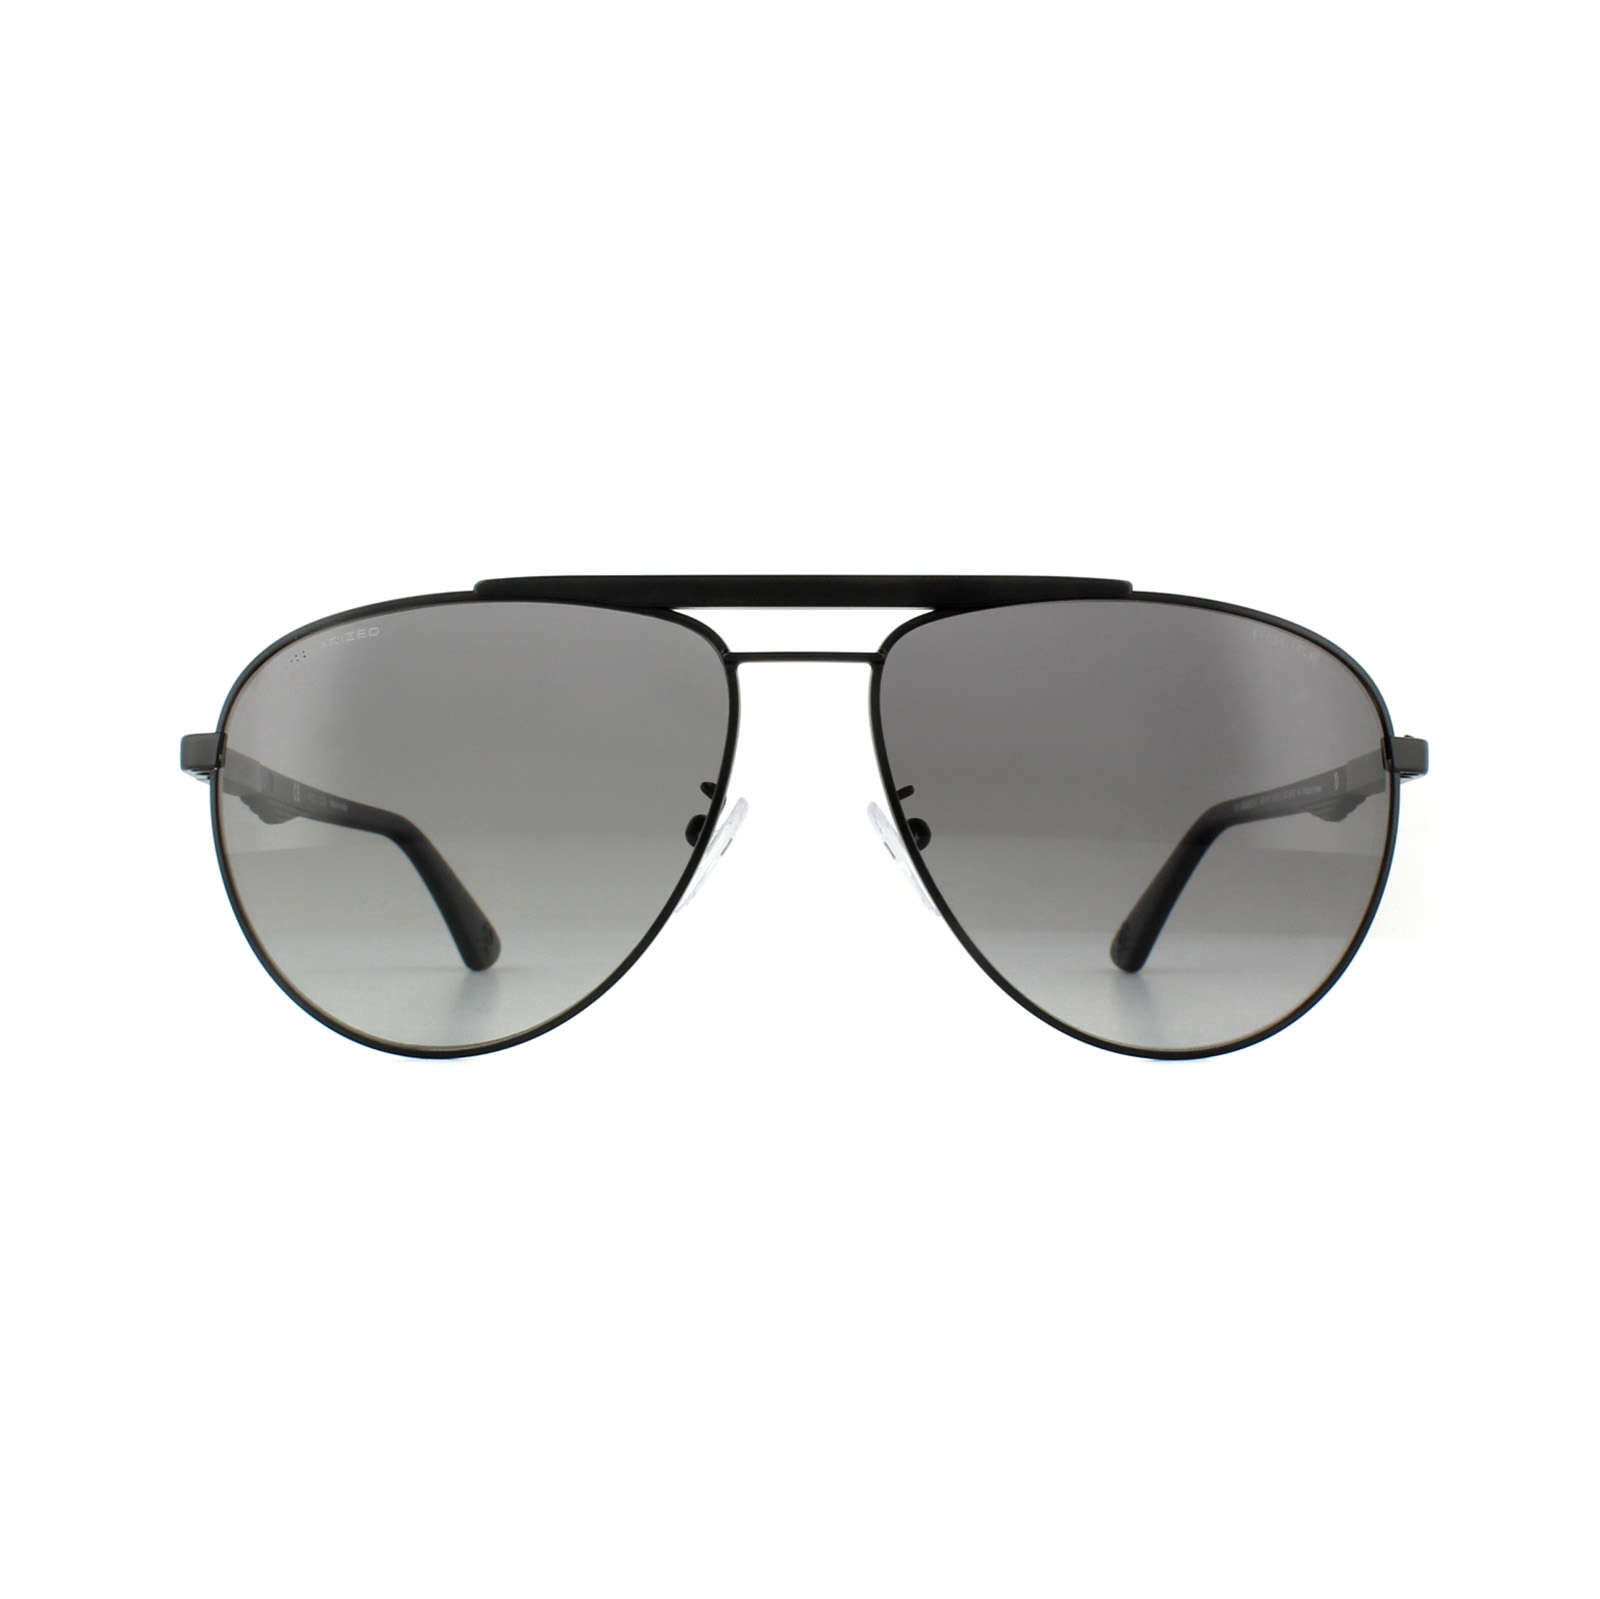 Sentinel Police Sunglasses SPL364 Brooklyn 1 531P Semi Matt Black Grey  Gradient Polarized. Sentinel Thumbnail 3 c574237843